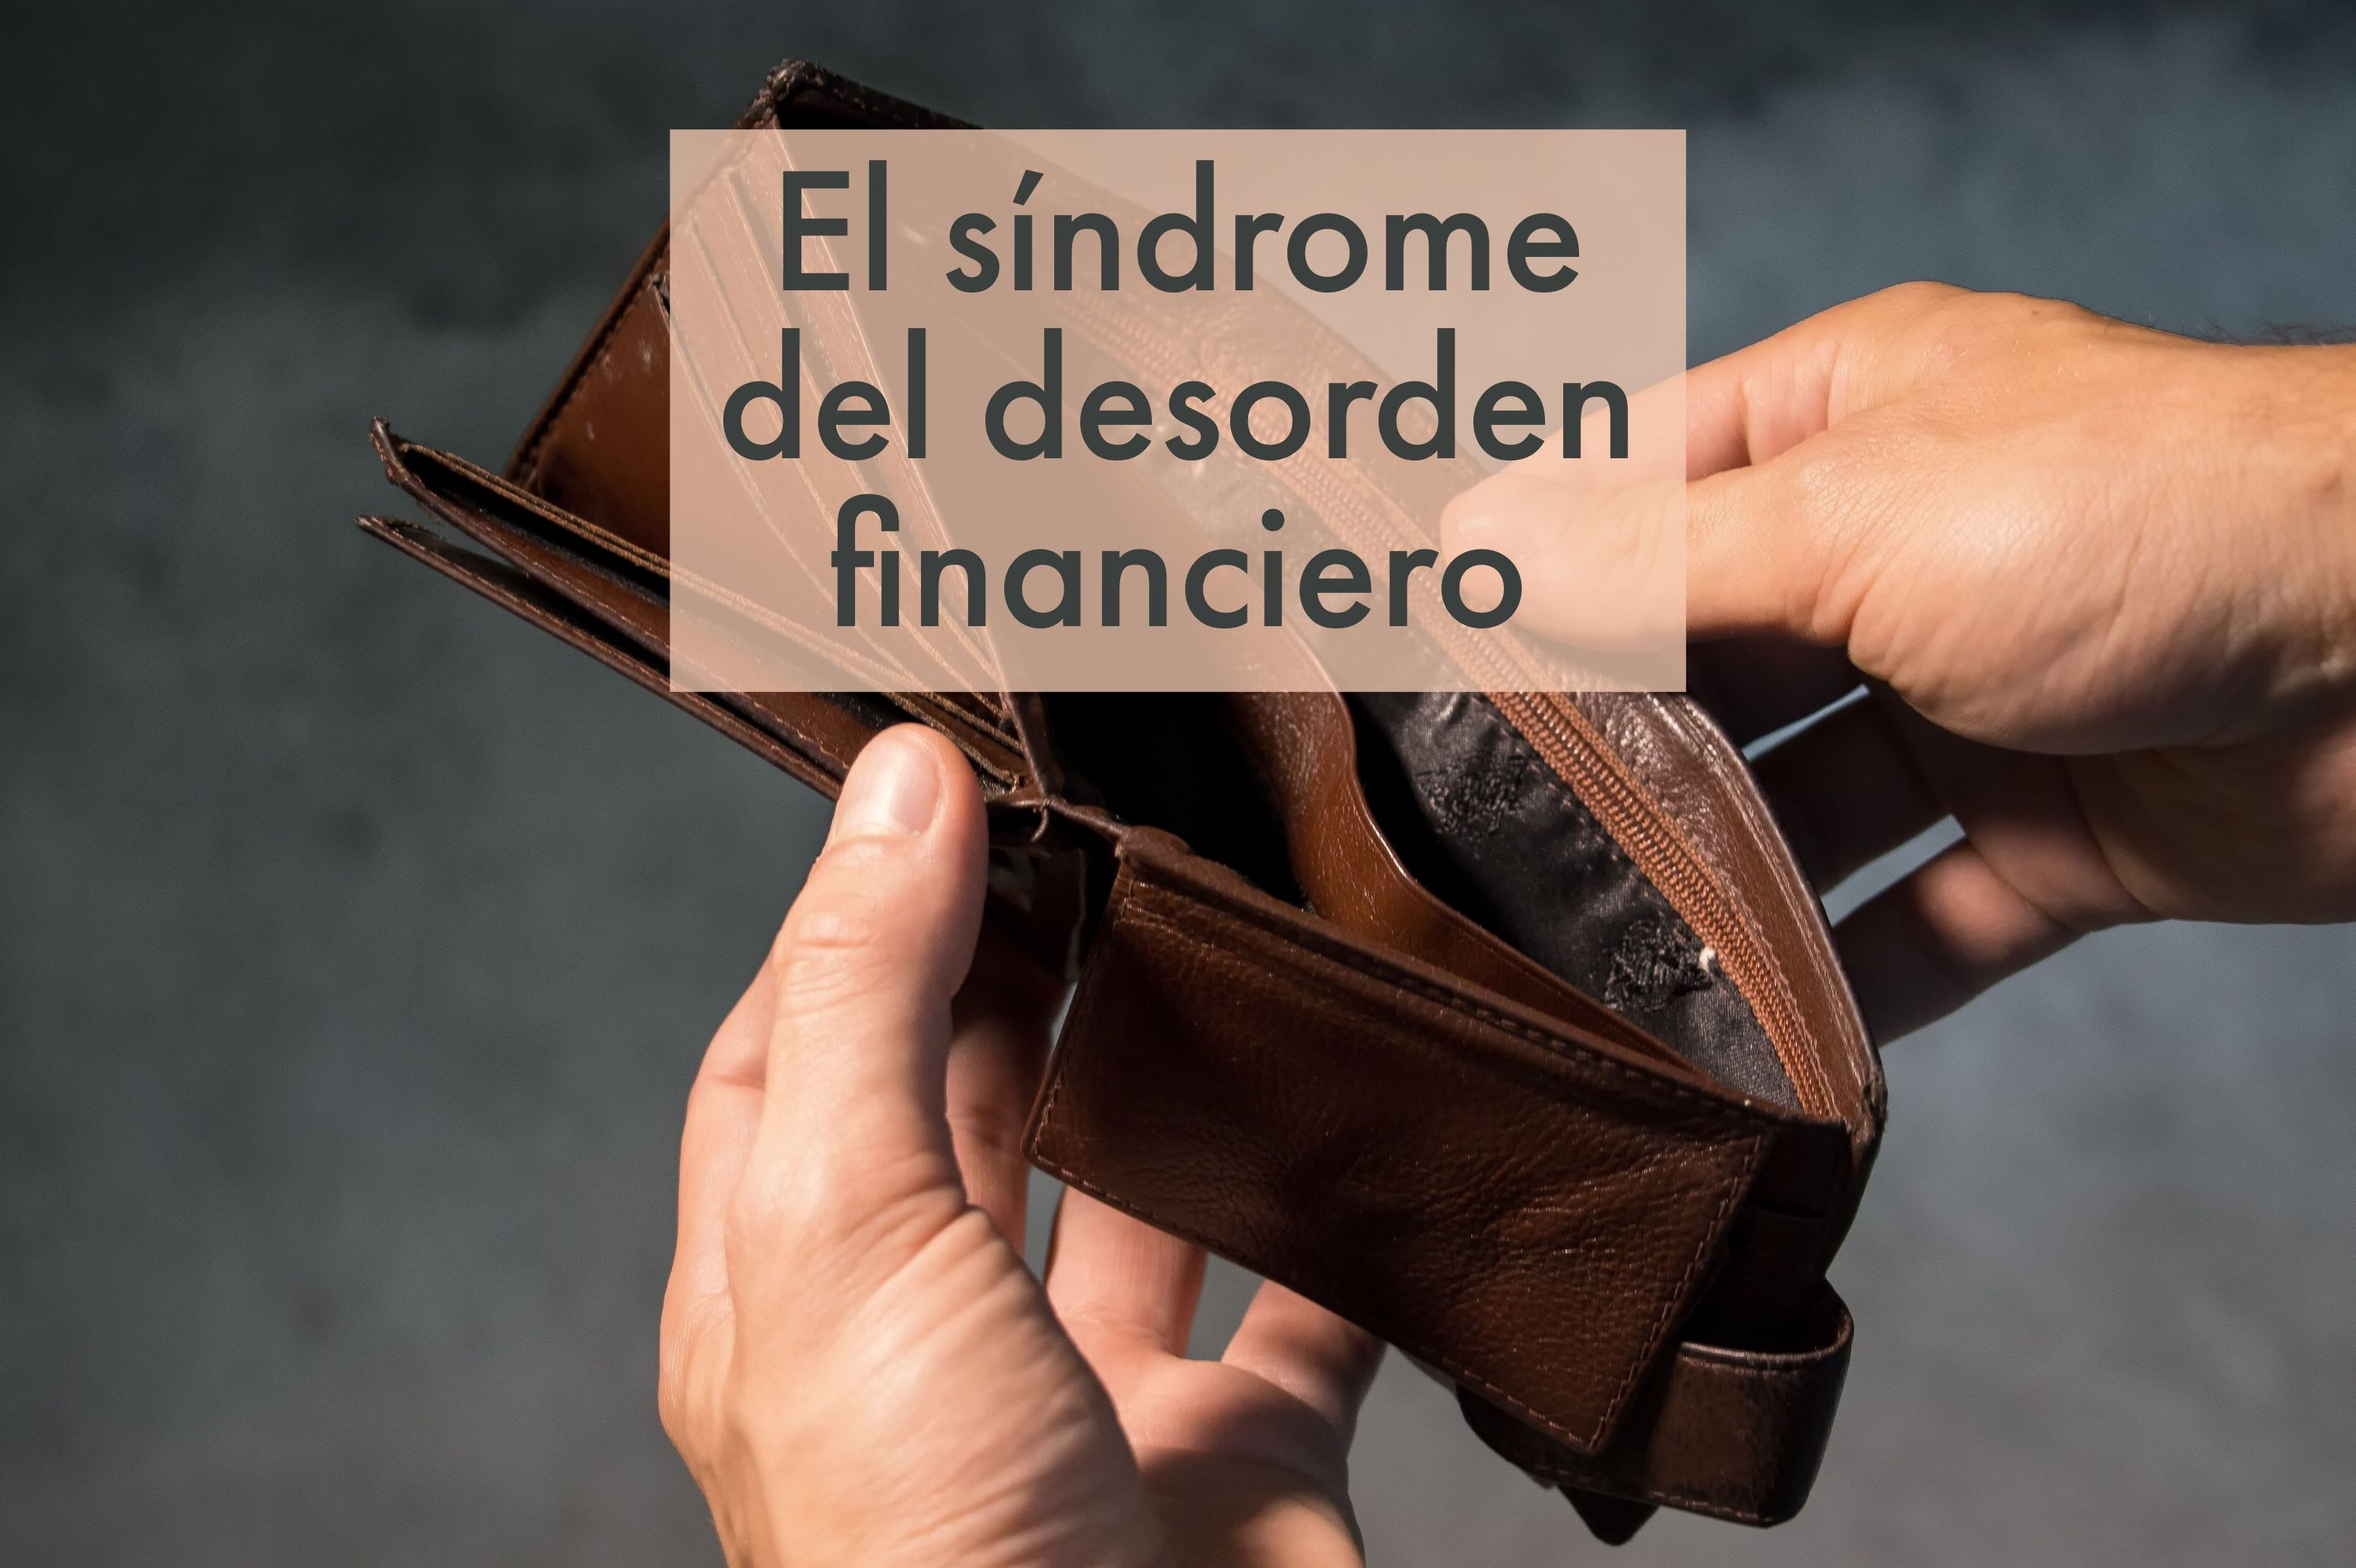 El síndrome del desorden financiero  }}